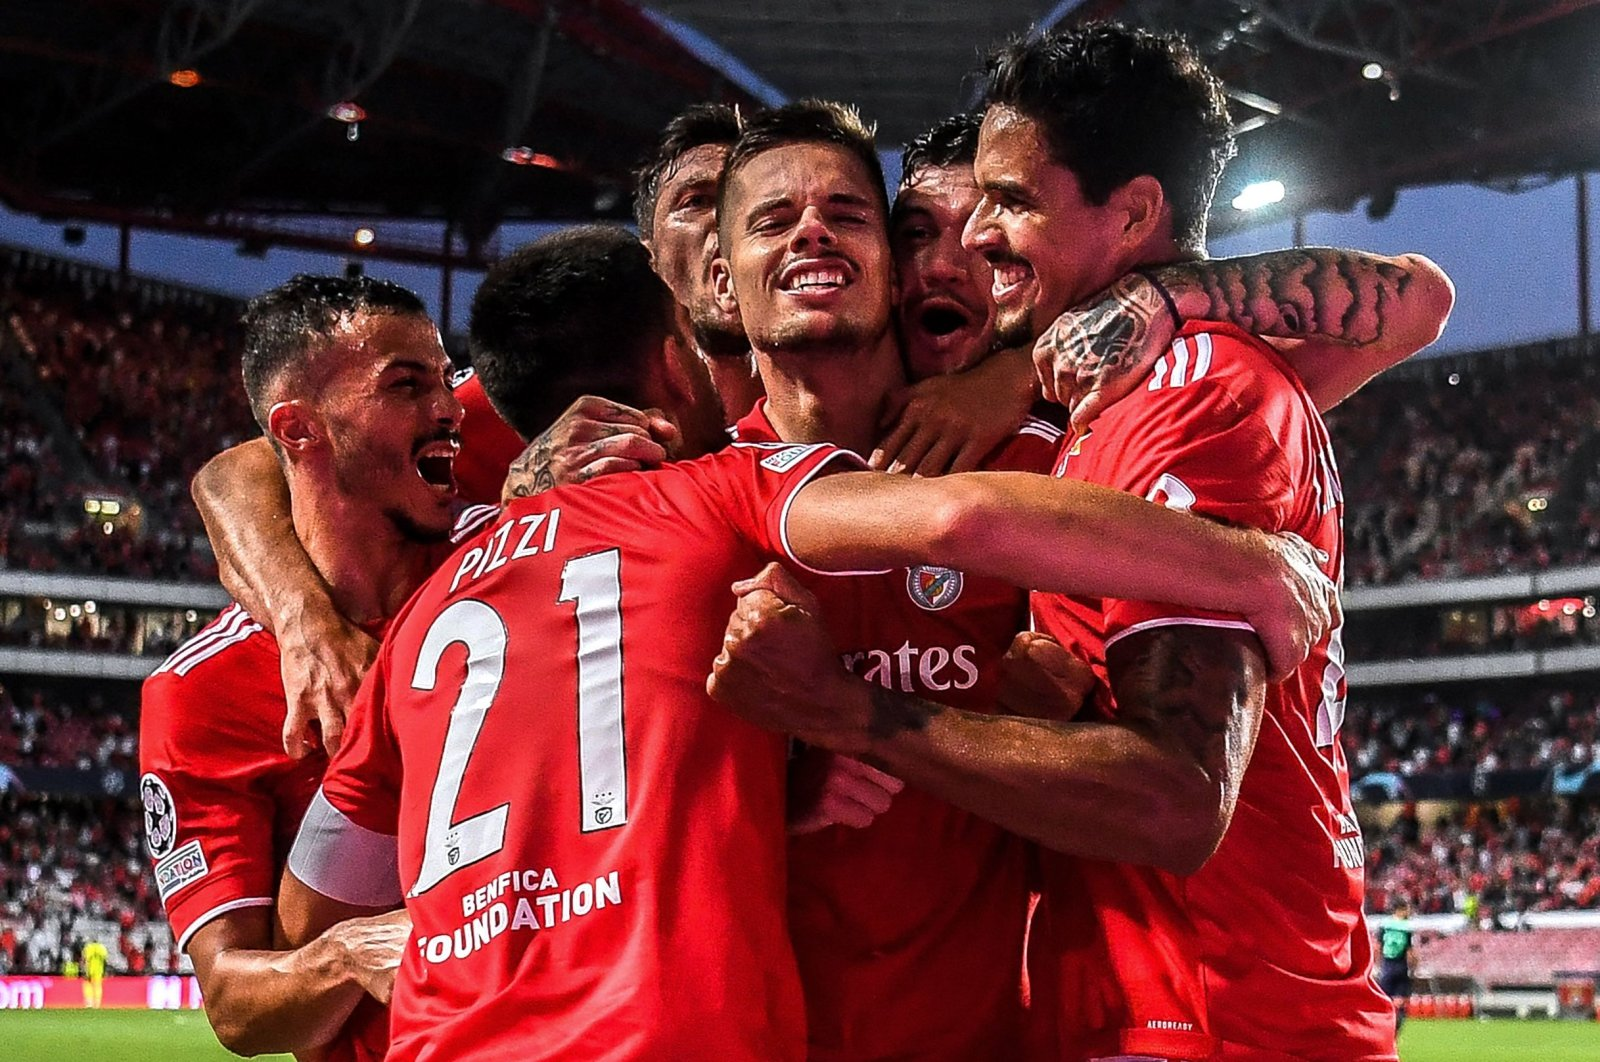 Benfica's German midfielder Julian Weigl (C) celebrates with teammates scoring his side's second goal during the UEFA Champions League play-off first leg match against PSV Eindhoven at the Luz stadium, Lisbon, Portugal, Aug. 18, 2021. (AFP Photo)